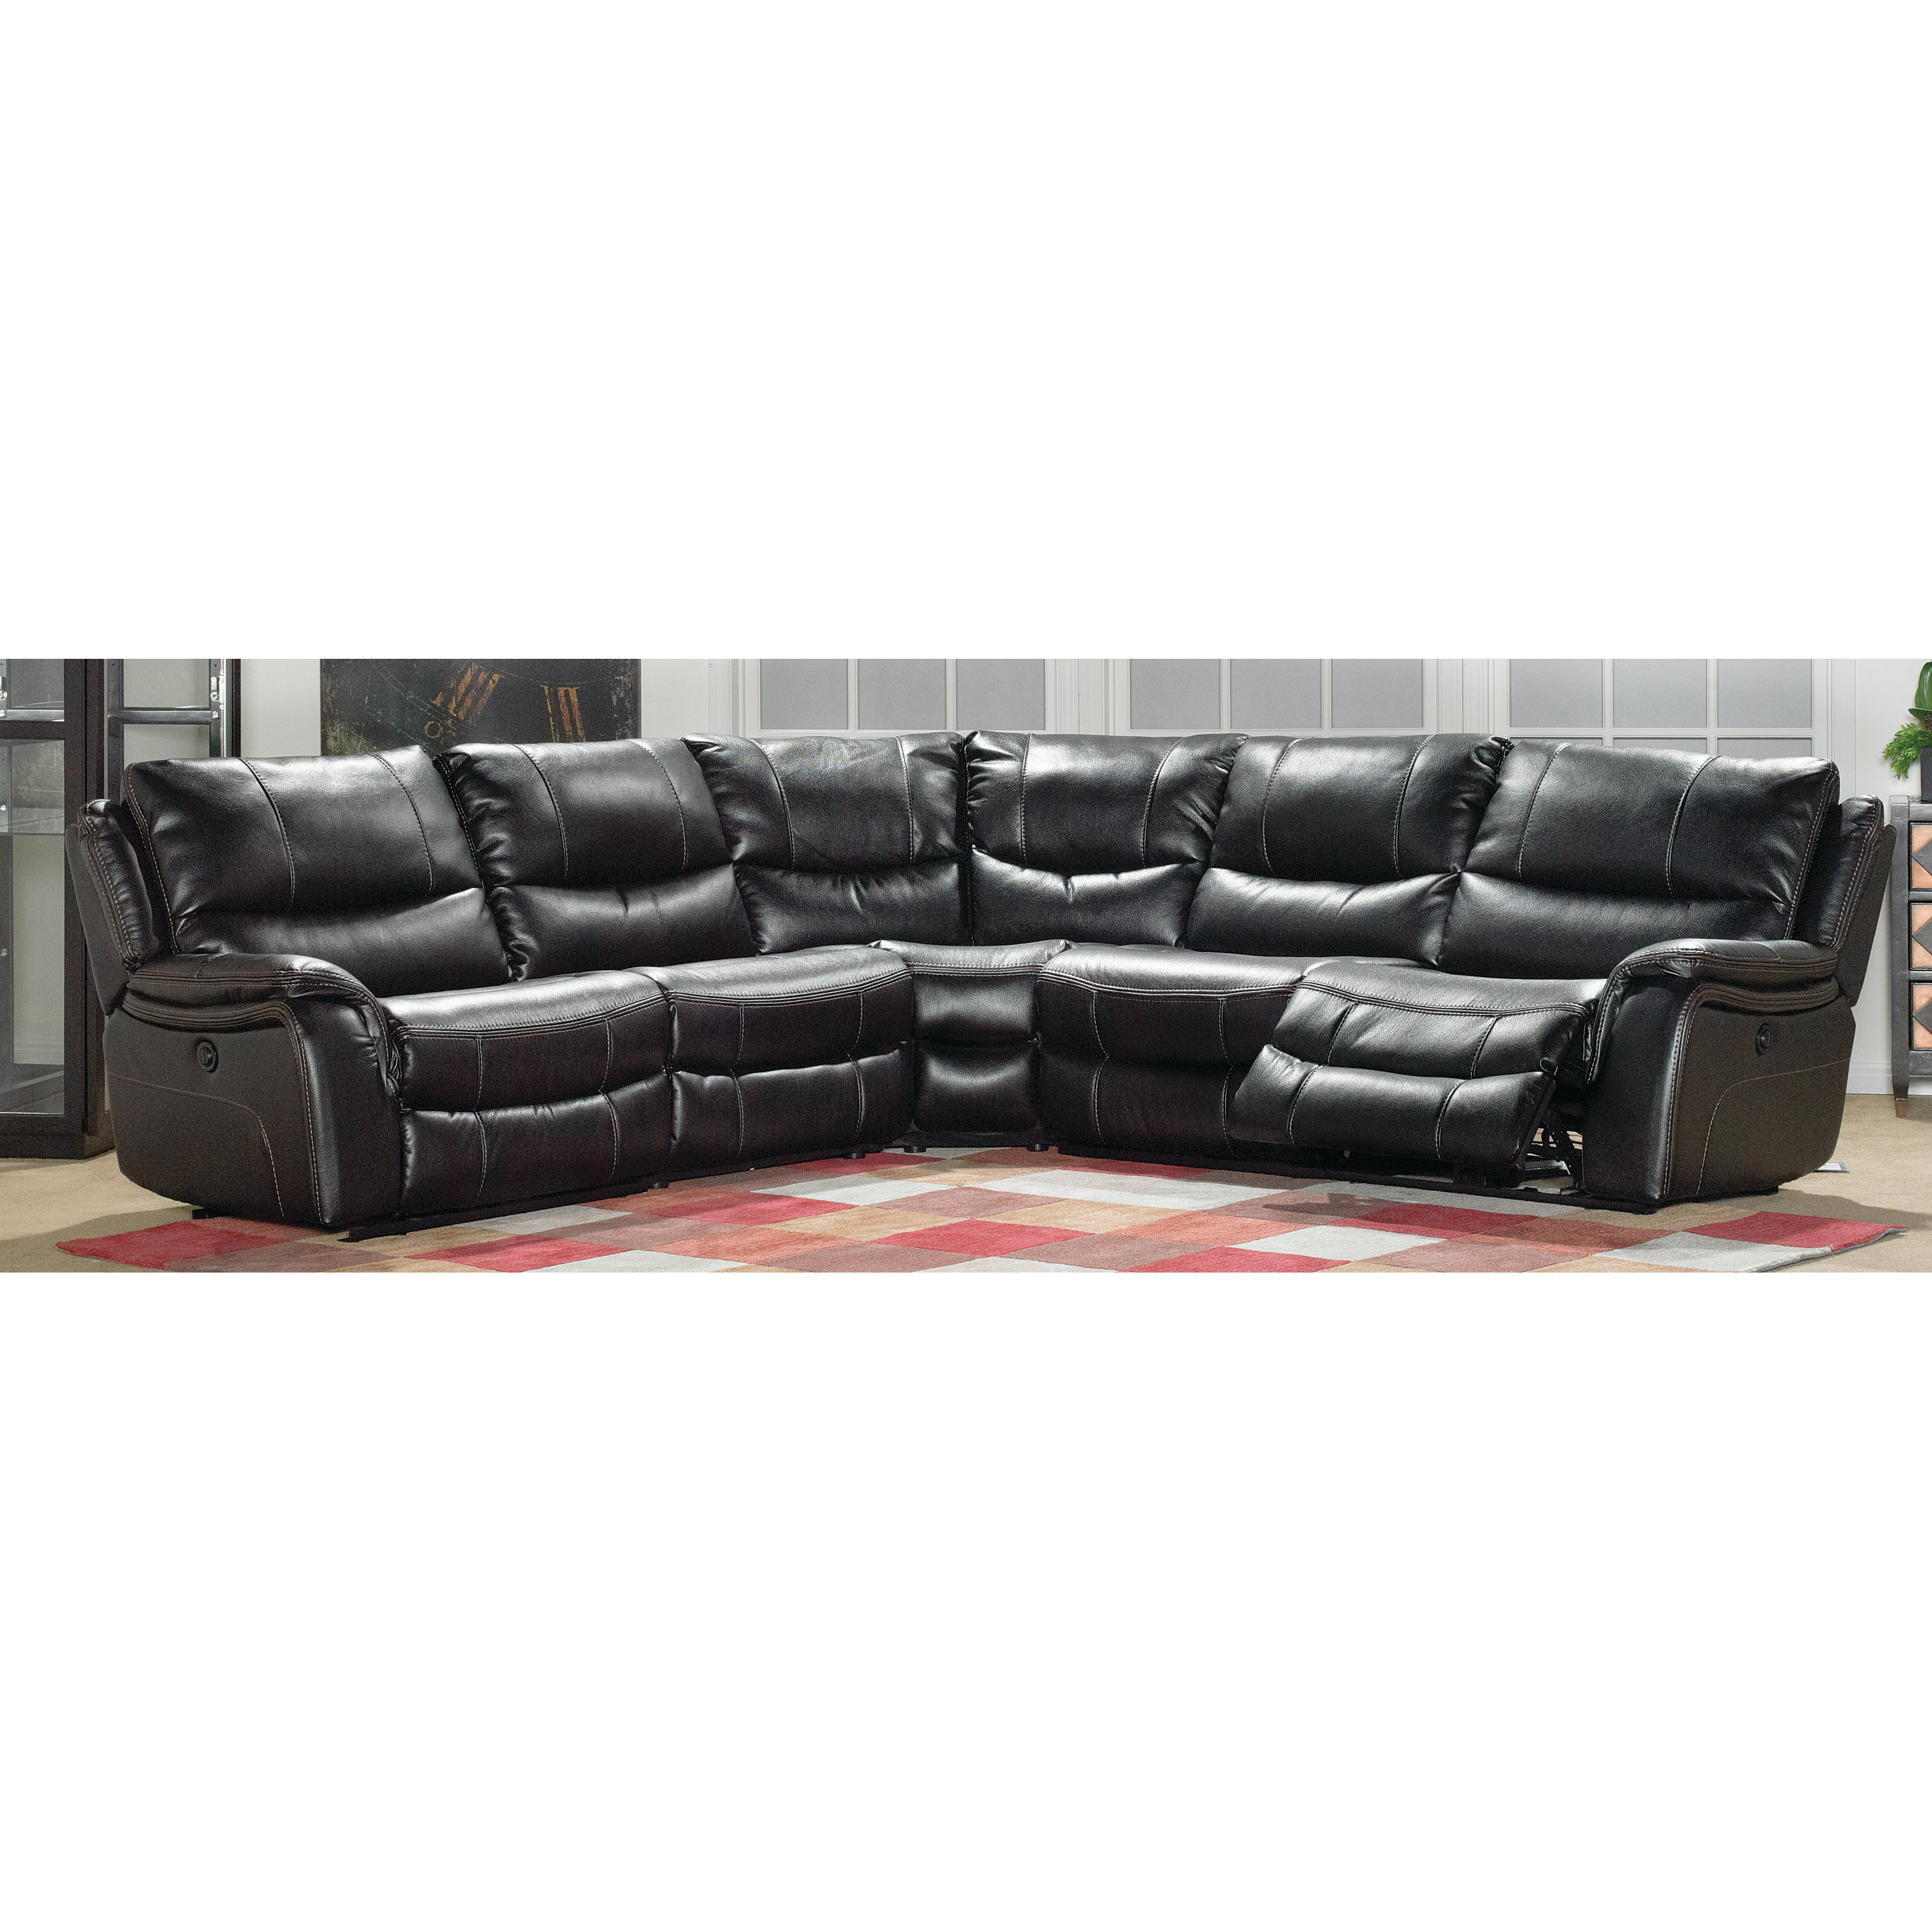 Black 5 Piece Reclining Sectional Sofa - Wayne | RC Willey Furniture ...